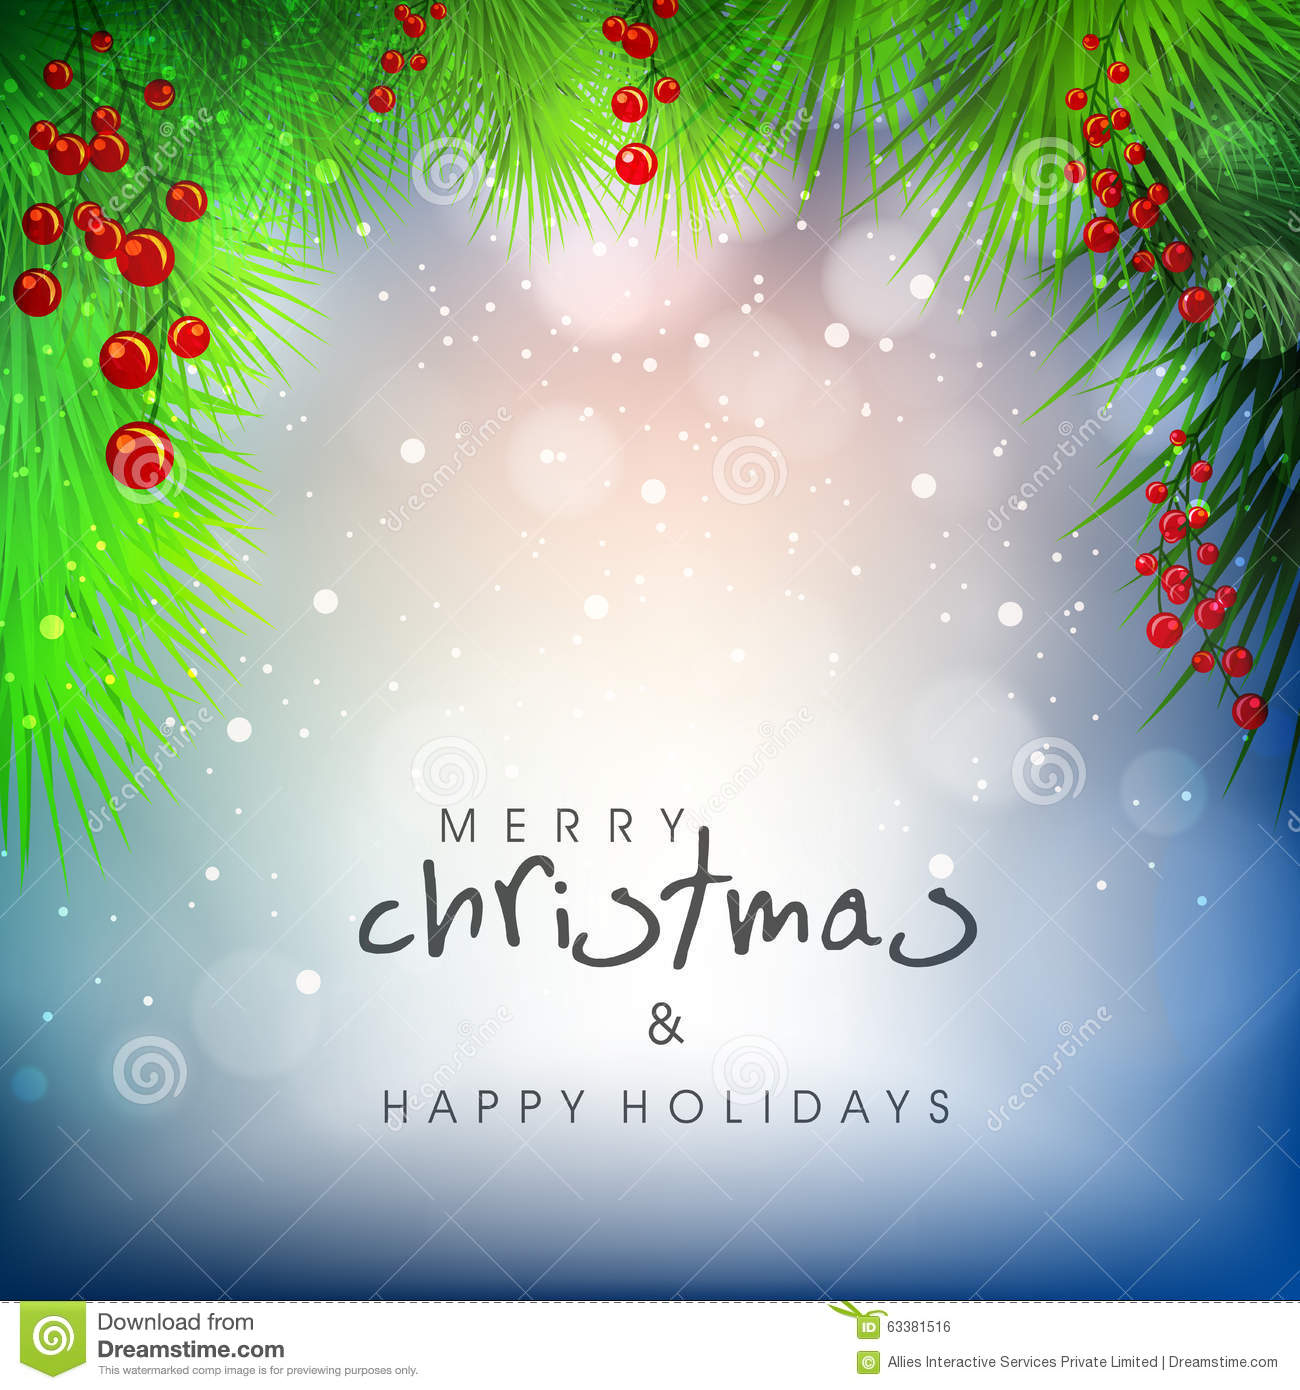 Greeting card for merry christmas and happy holidays stock download greeting card for merry christmas and happy holidays stock illustration illustration of congratulation m4hsunfo